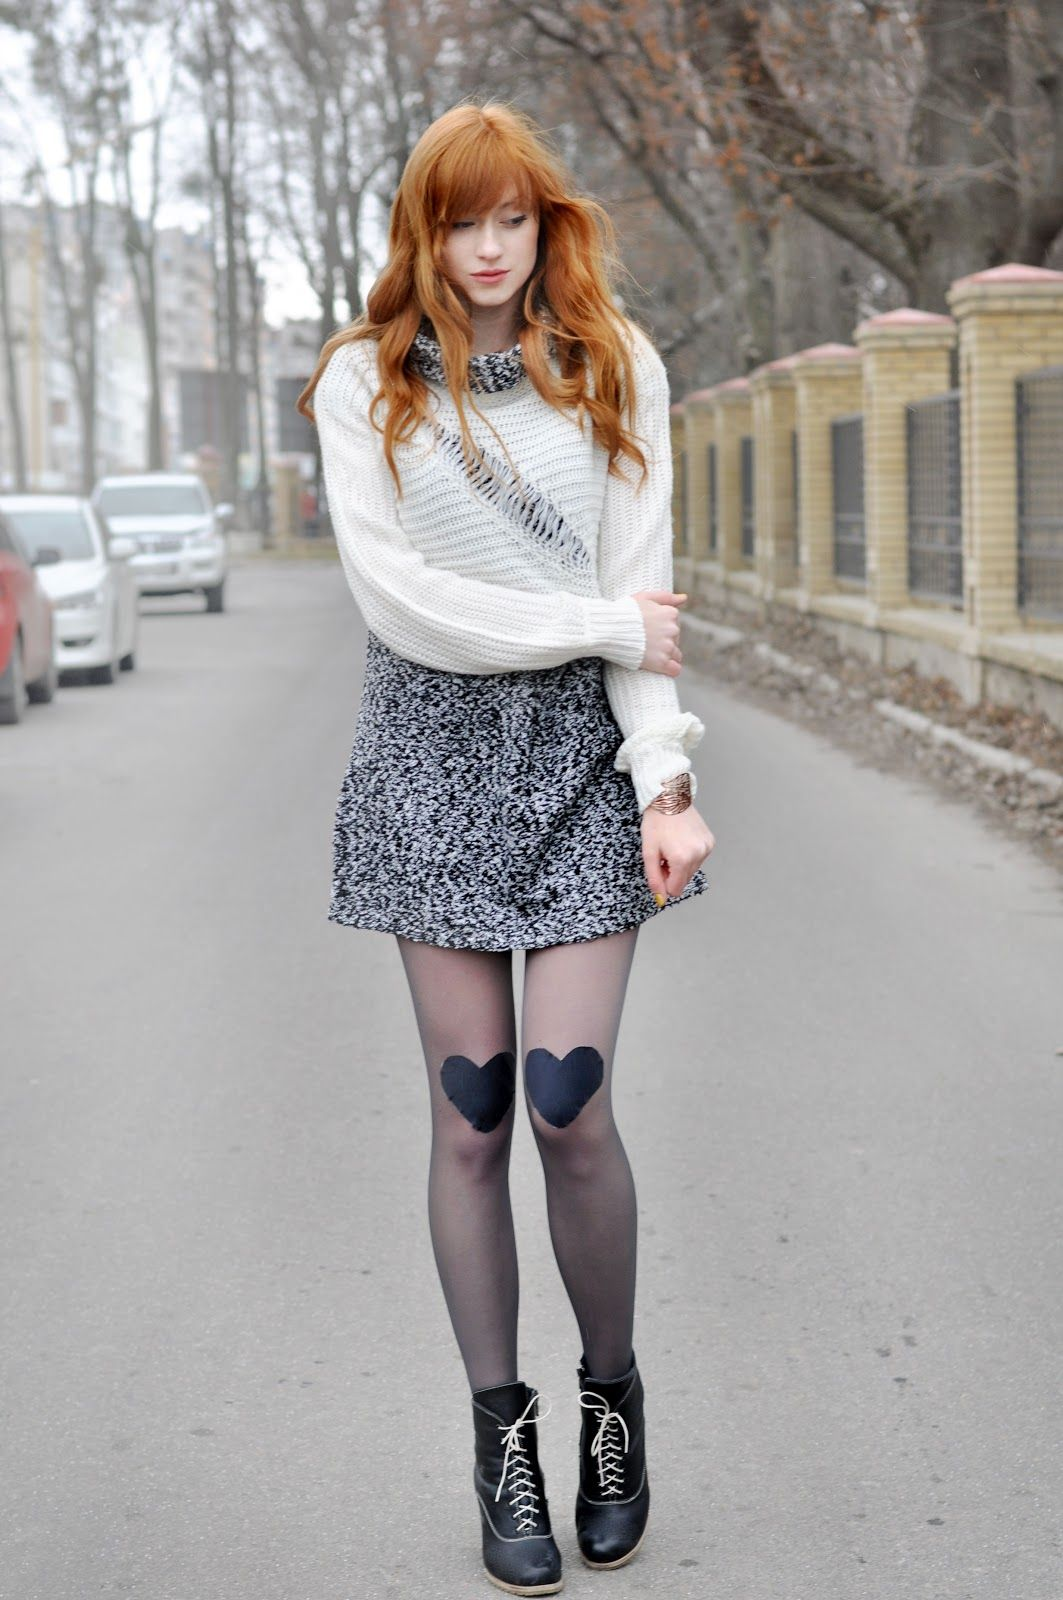 Valuable opinion redhead freckled mini skirt share